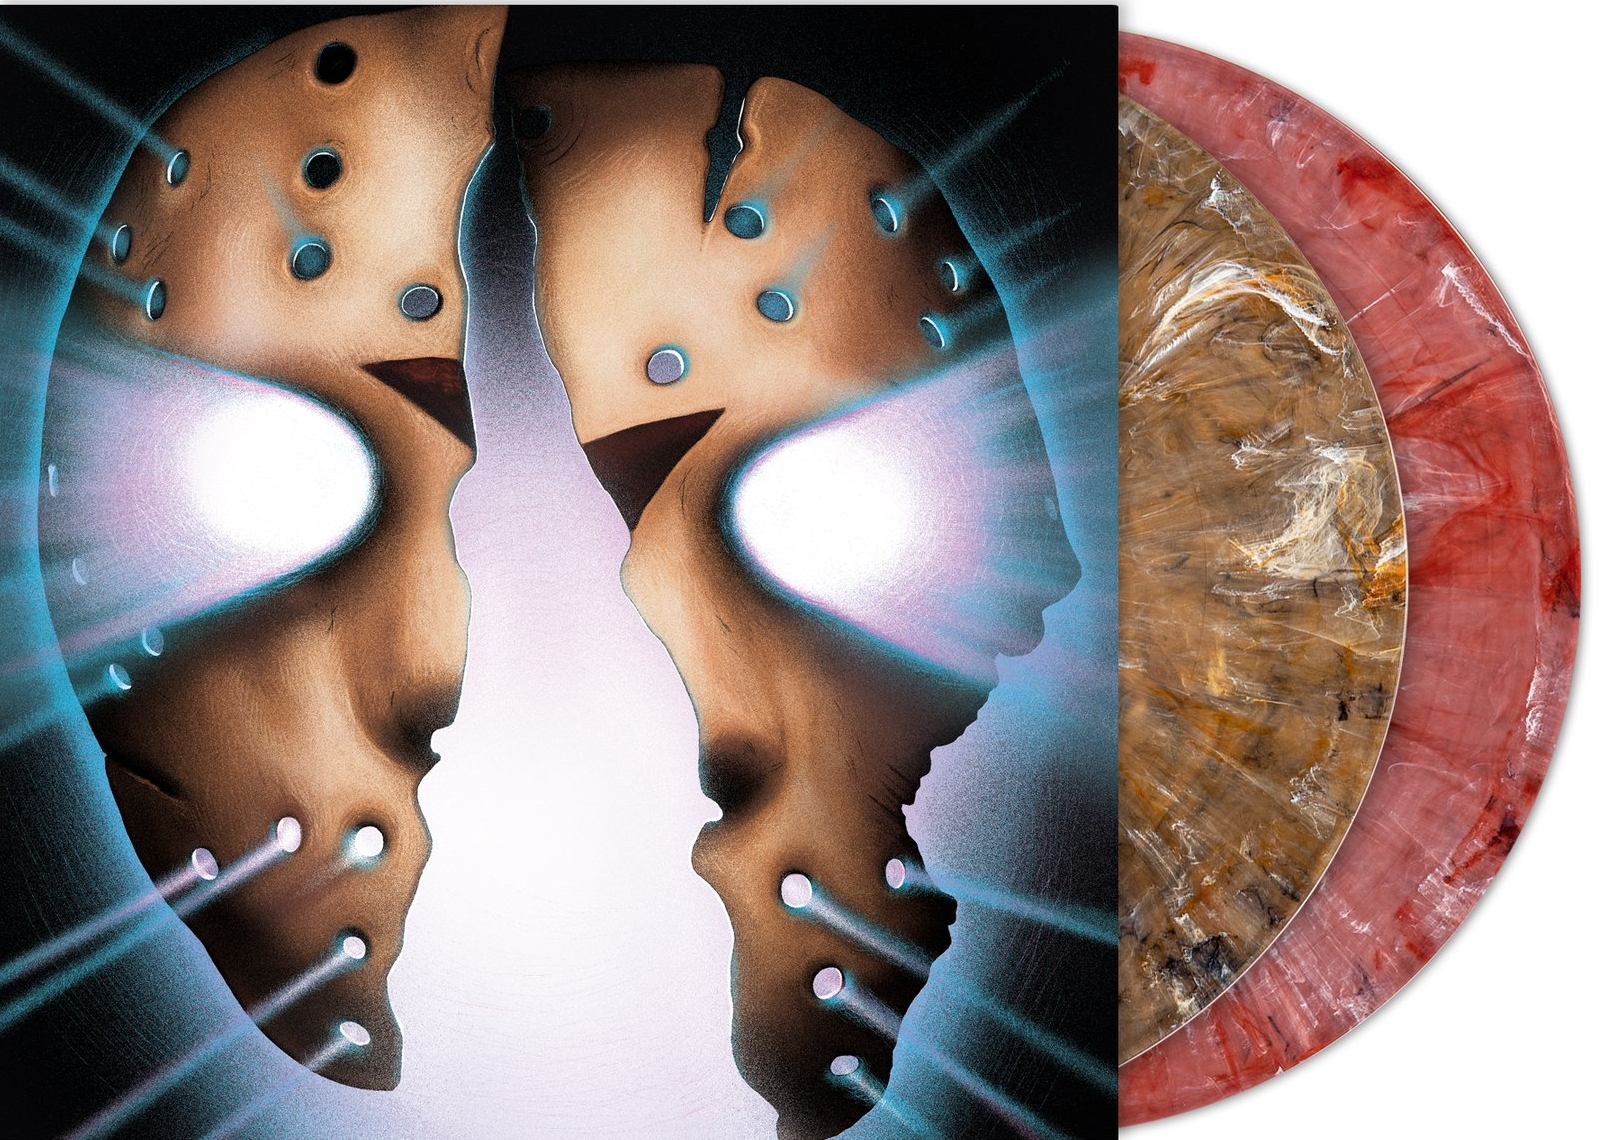 Friday the 13th Part VII: The New Blood (Vinyl)